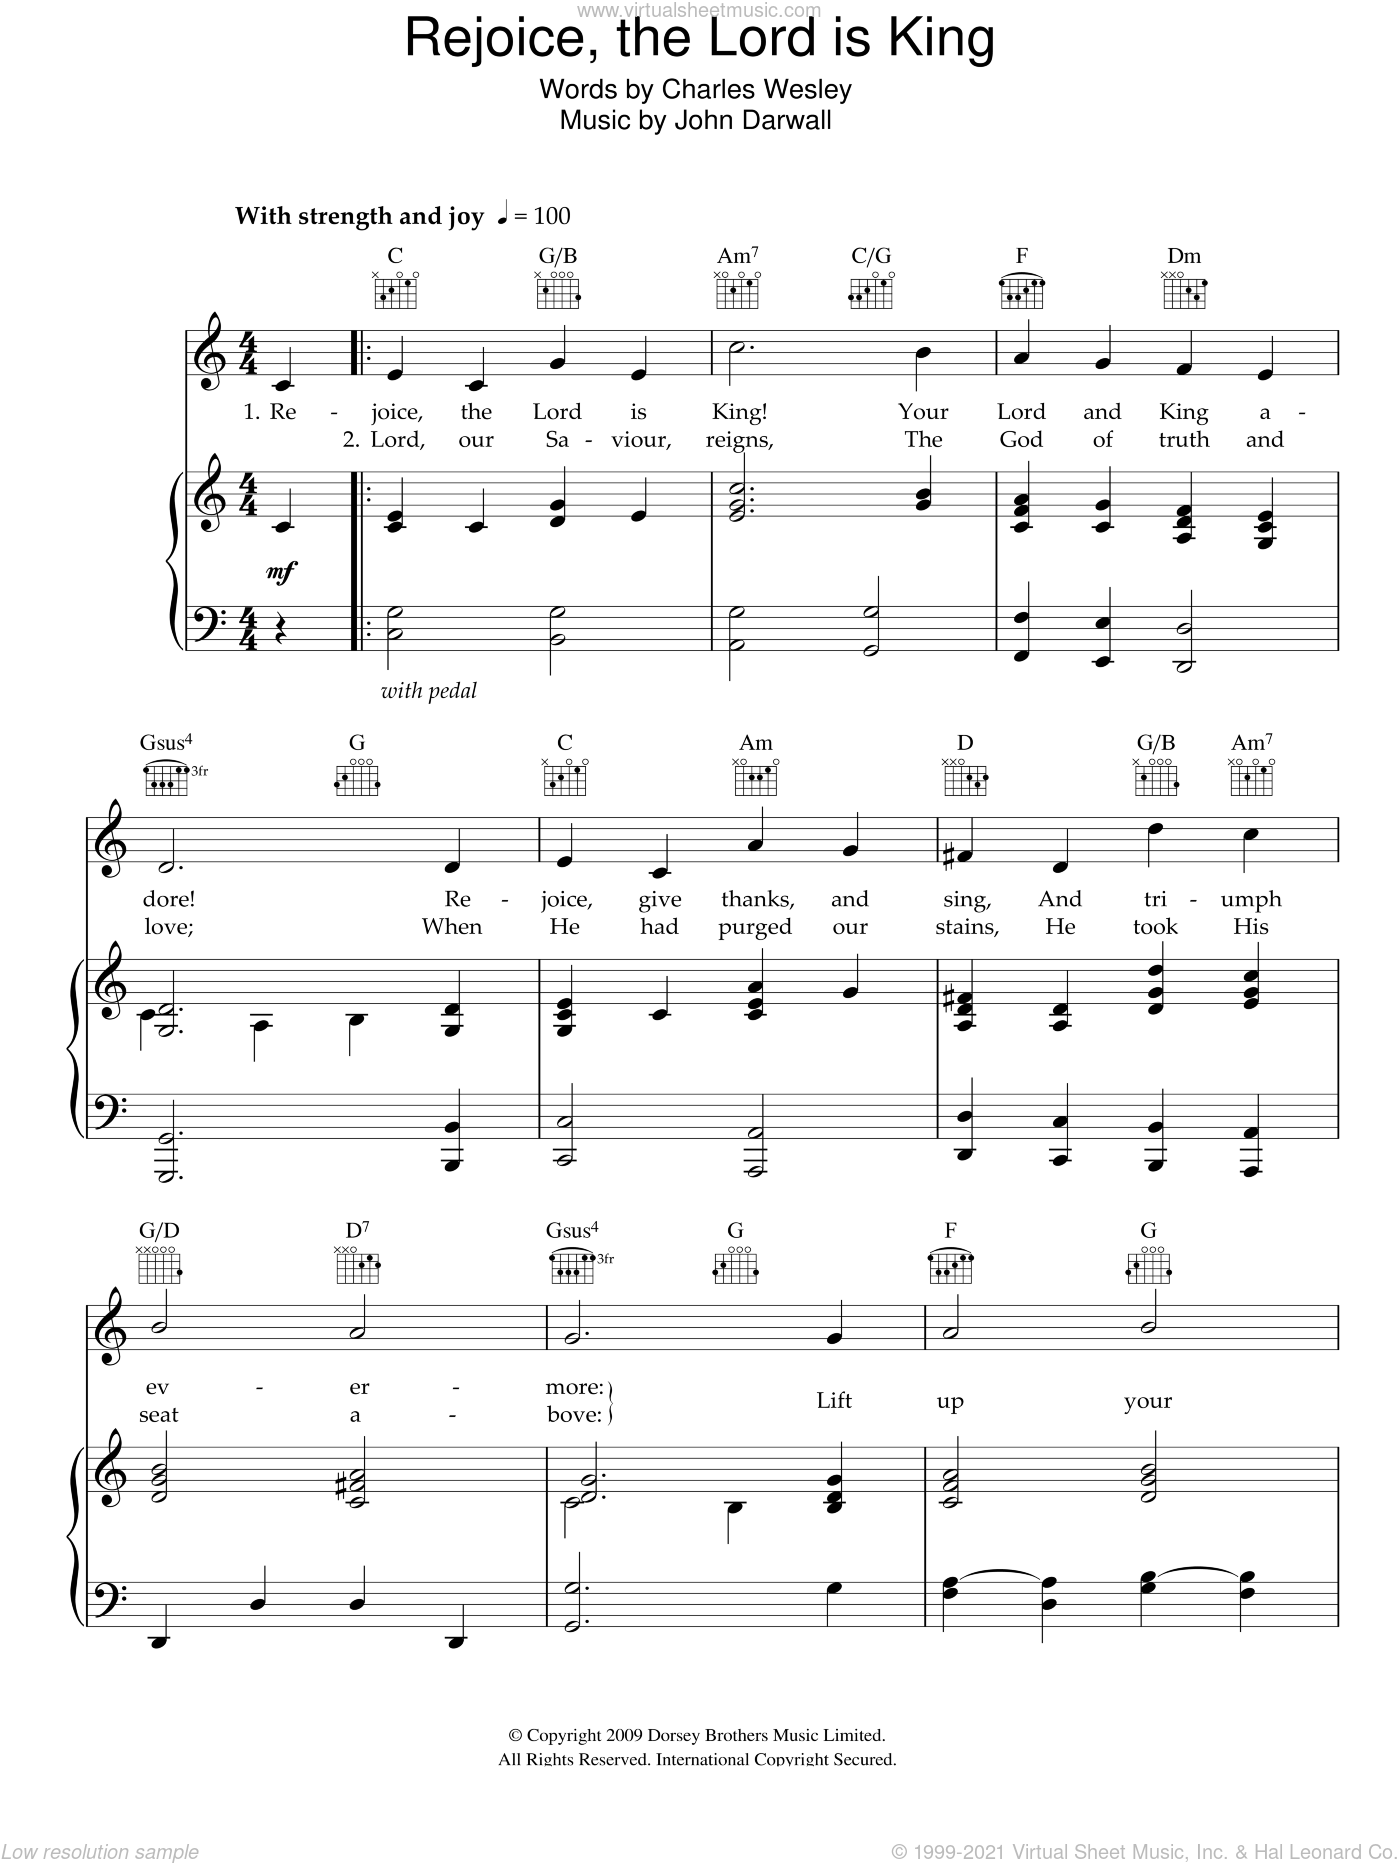 Rejoice The Lord Is King sheet music for voice, piano or guitar by Charles Wesley and John Darwall, intermediate skill level